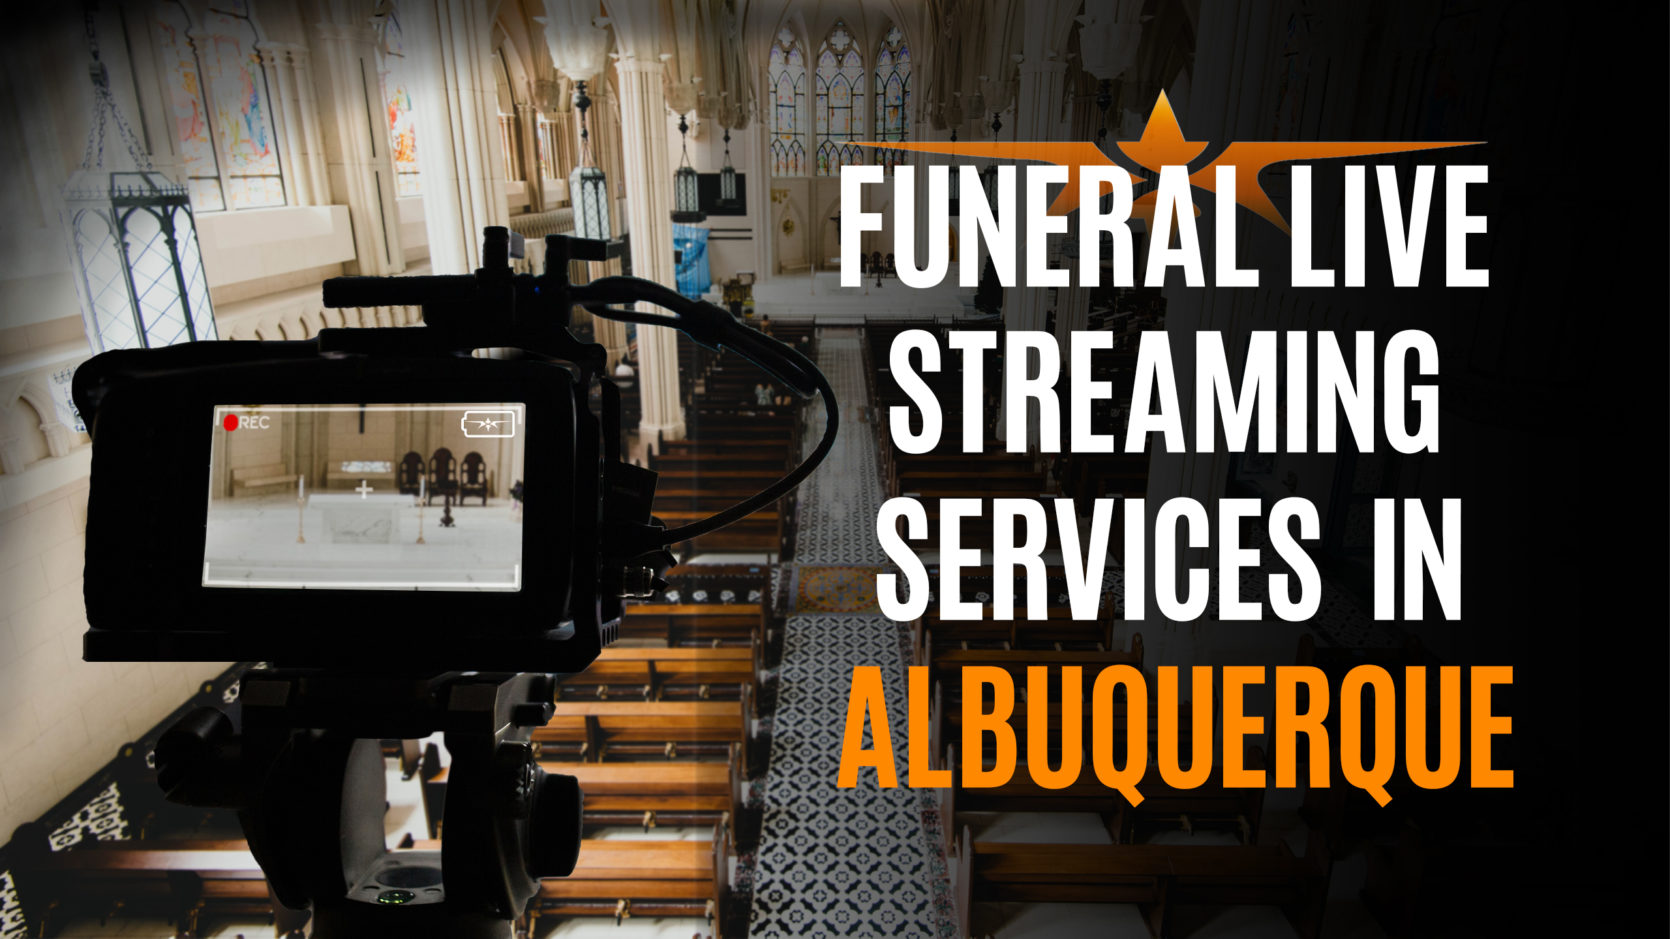 Funeral Live Streaming Services in Albuquerque